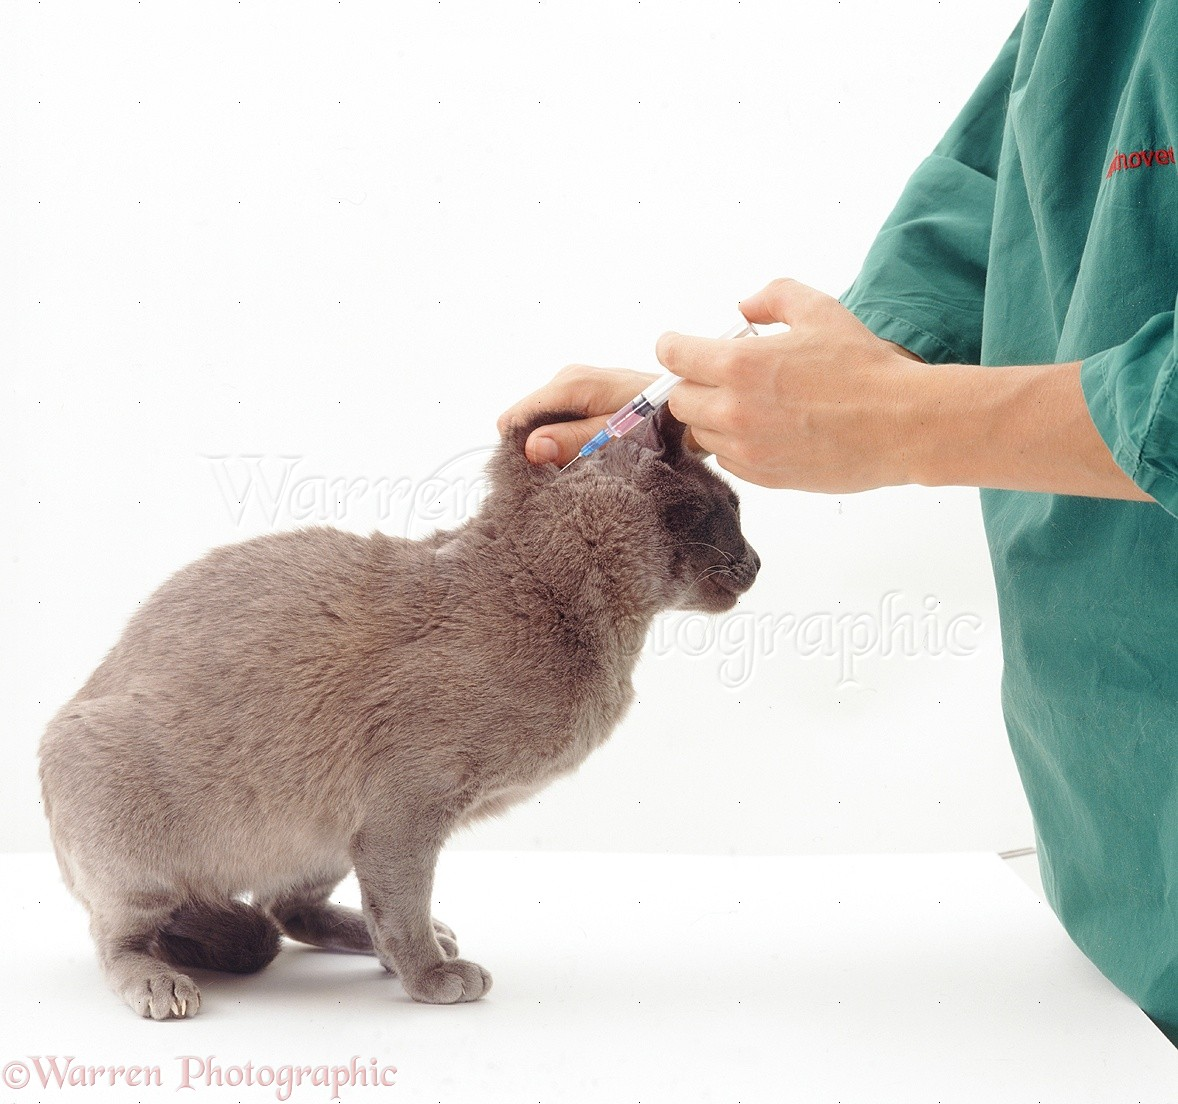 Giving Booster Vaccination To A Cat Photo WP25698